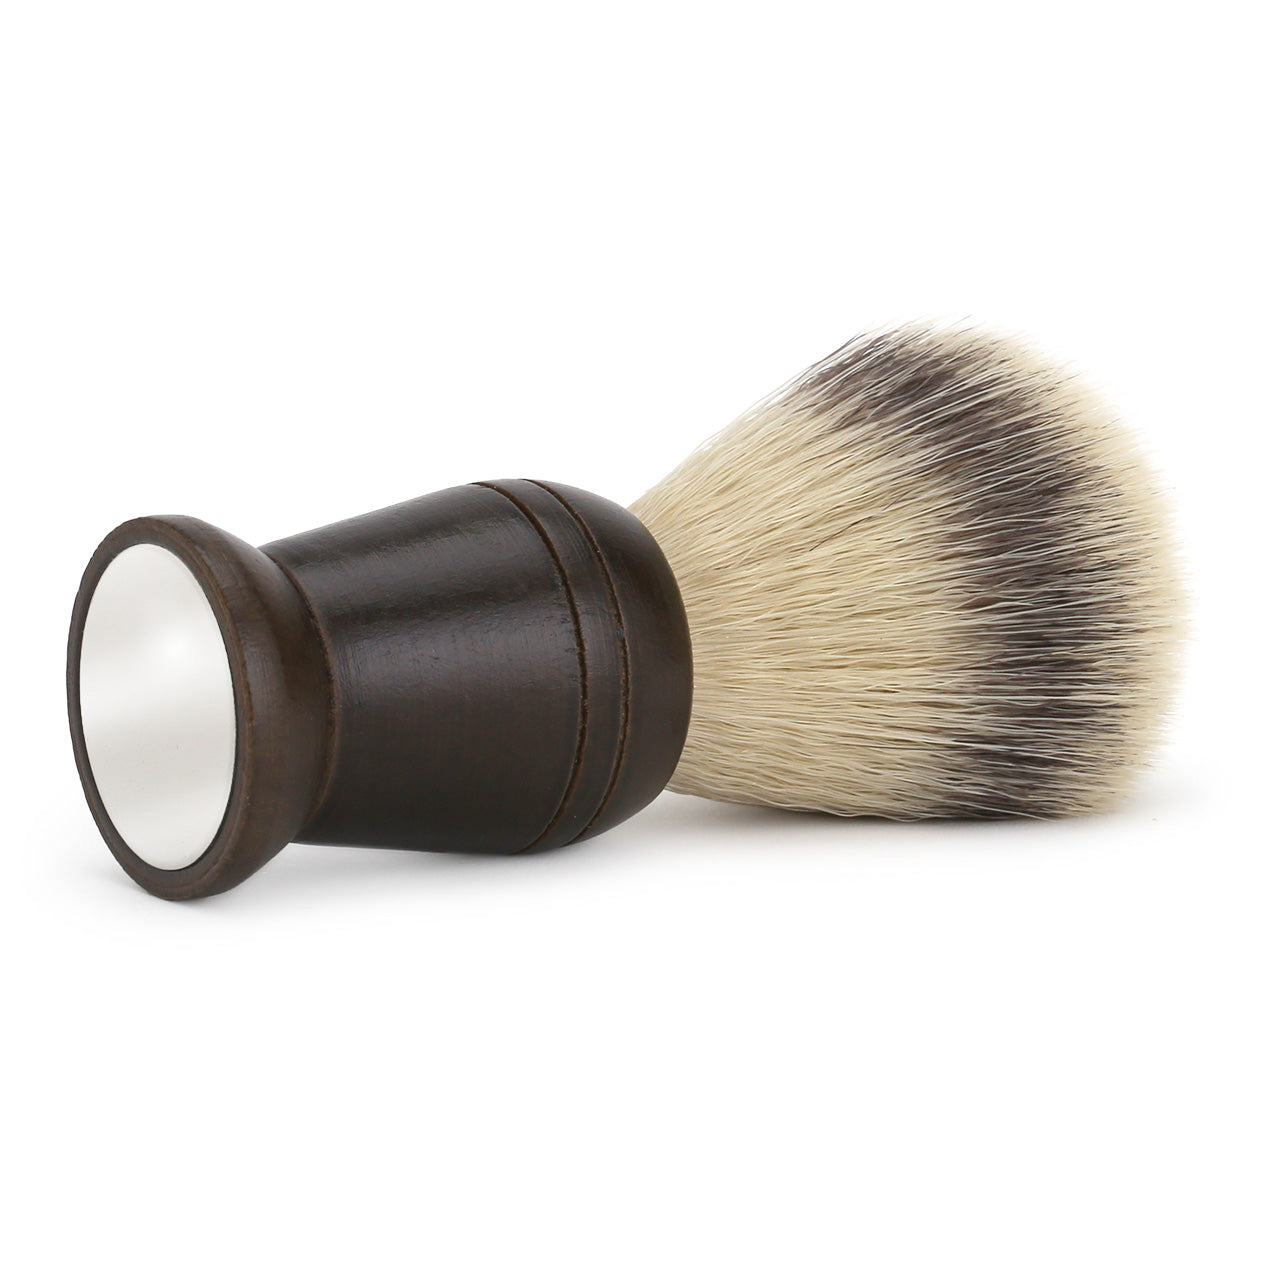 Synthetic shaving brush with wooden handle